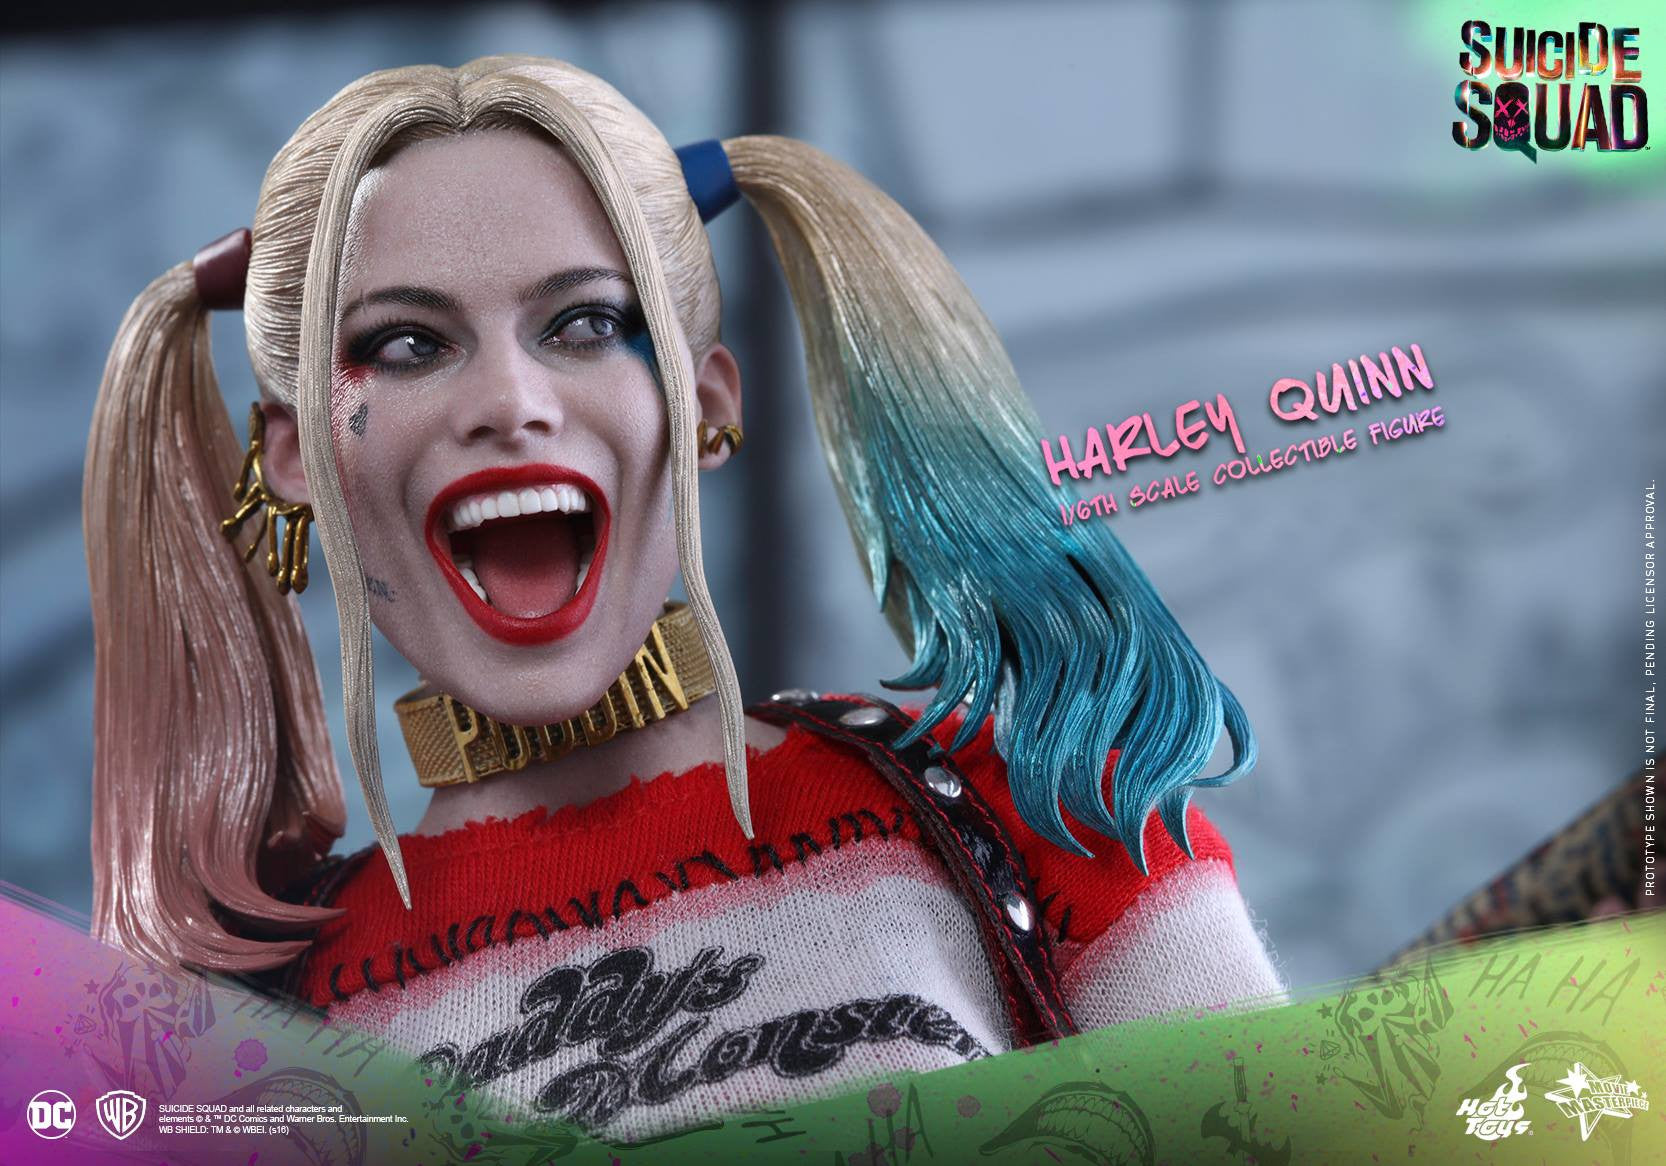 Hot Toys - MMS383 - Suicide Squad - Harley Quinn (Normal Edition) - Marvelous Toys - 16